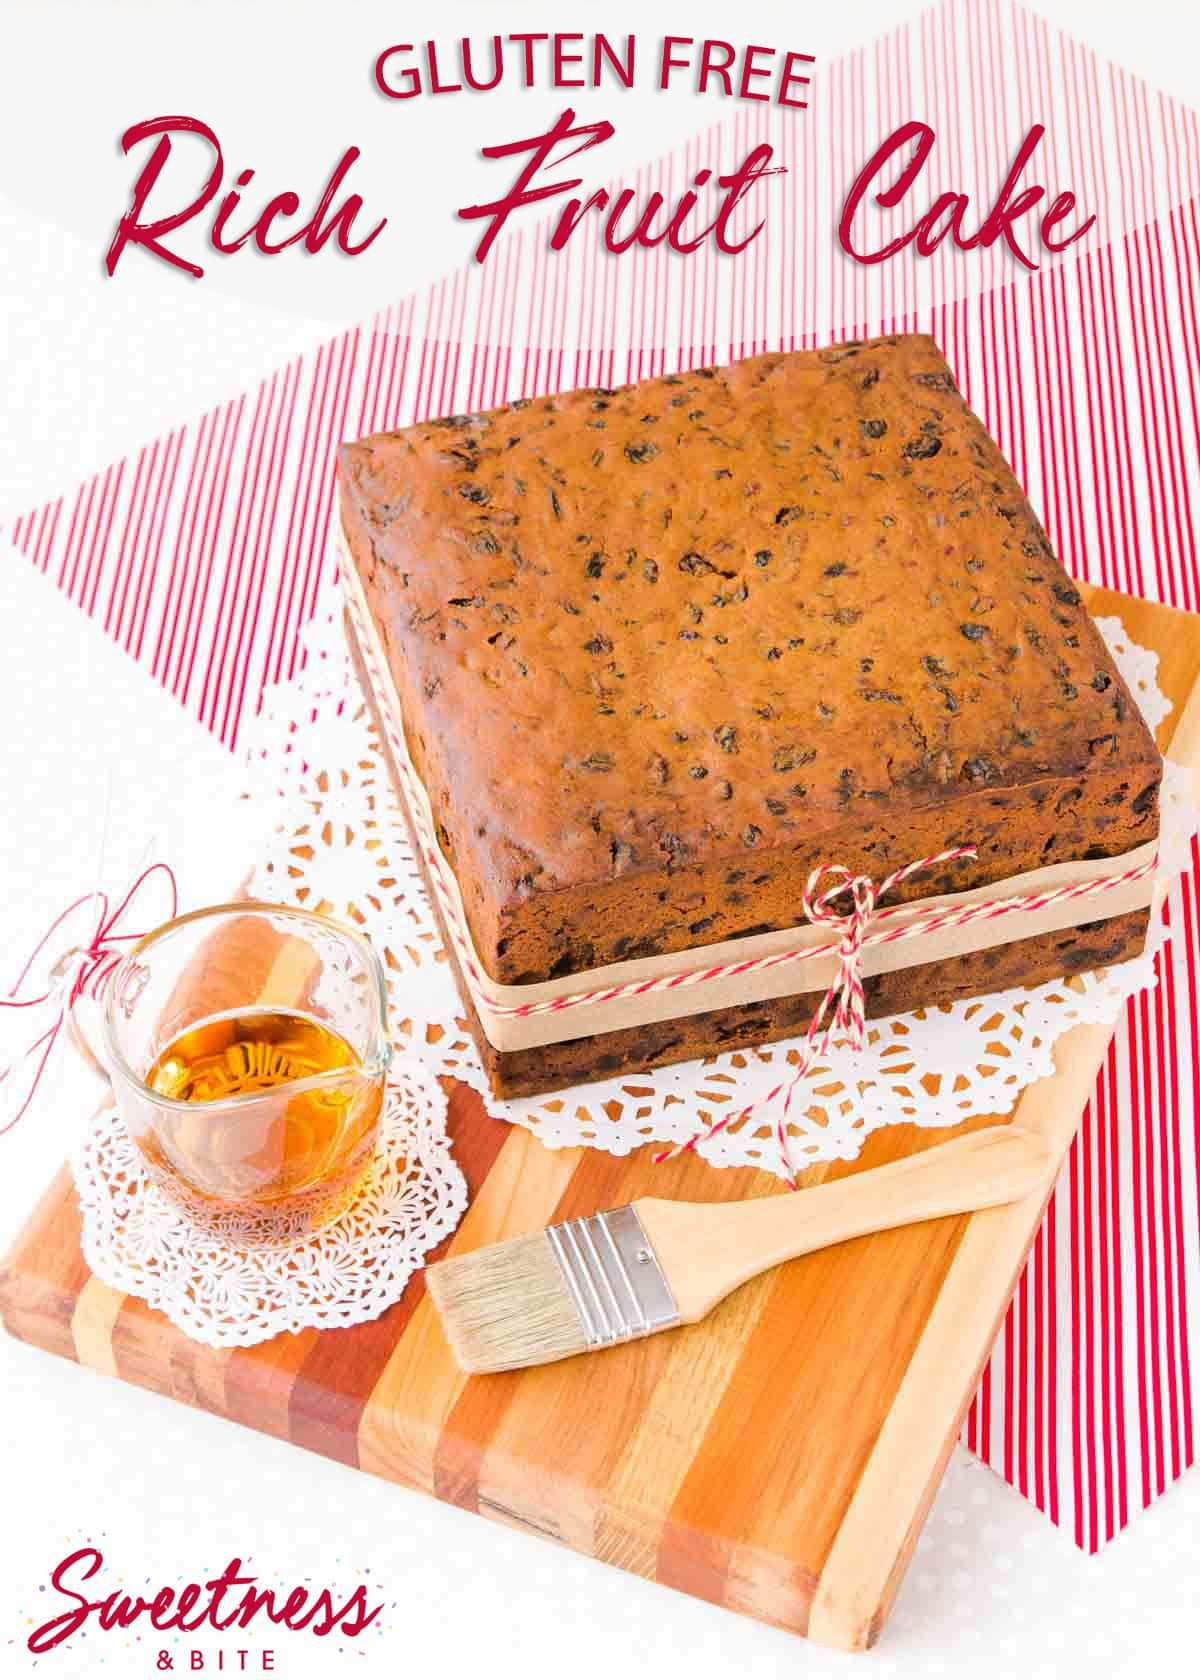 Square gluten free fruit cake on a wooden board, sitting on a red and white striped cloth, with a glass jug of brandy and a pastry brush